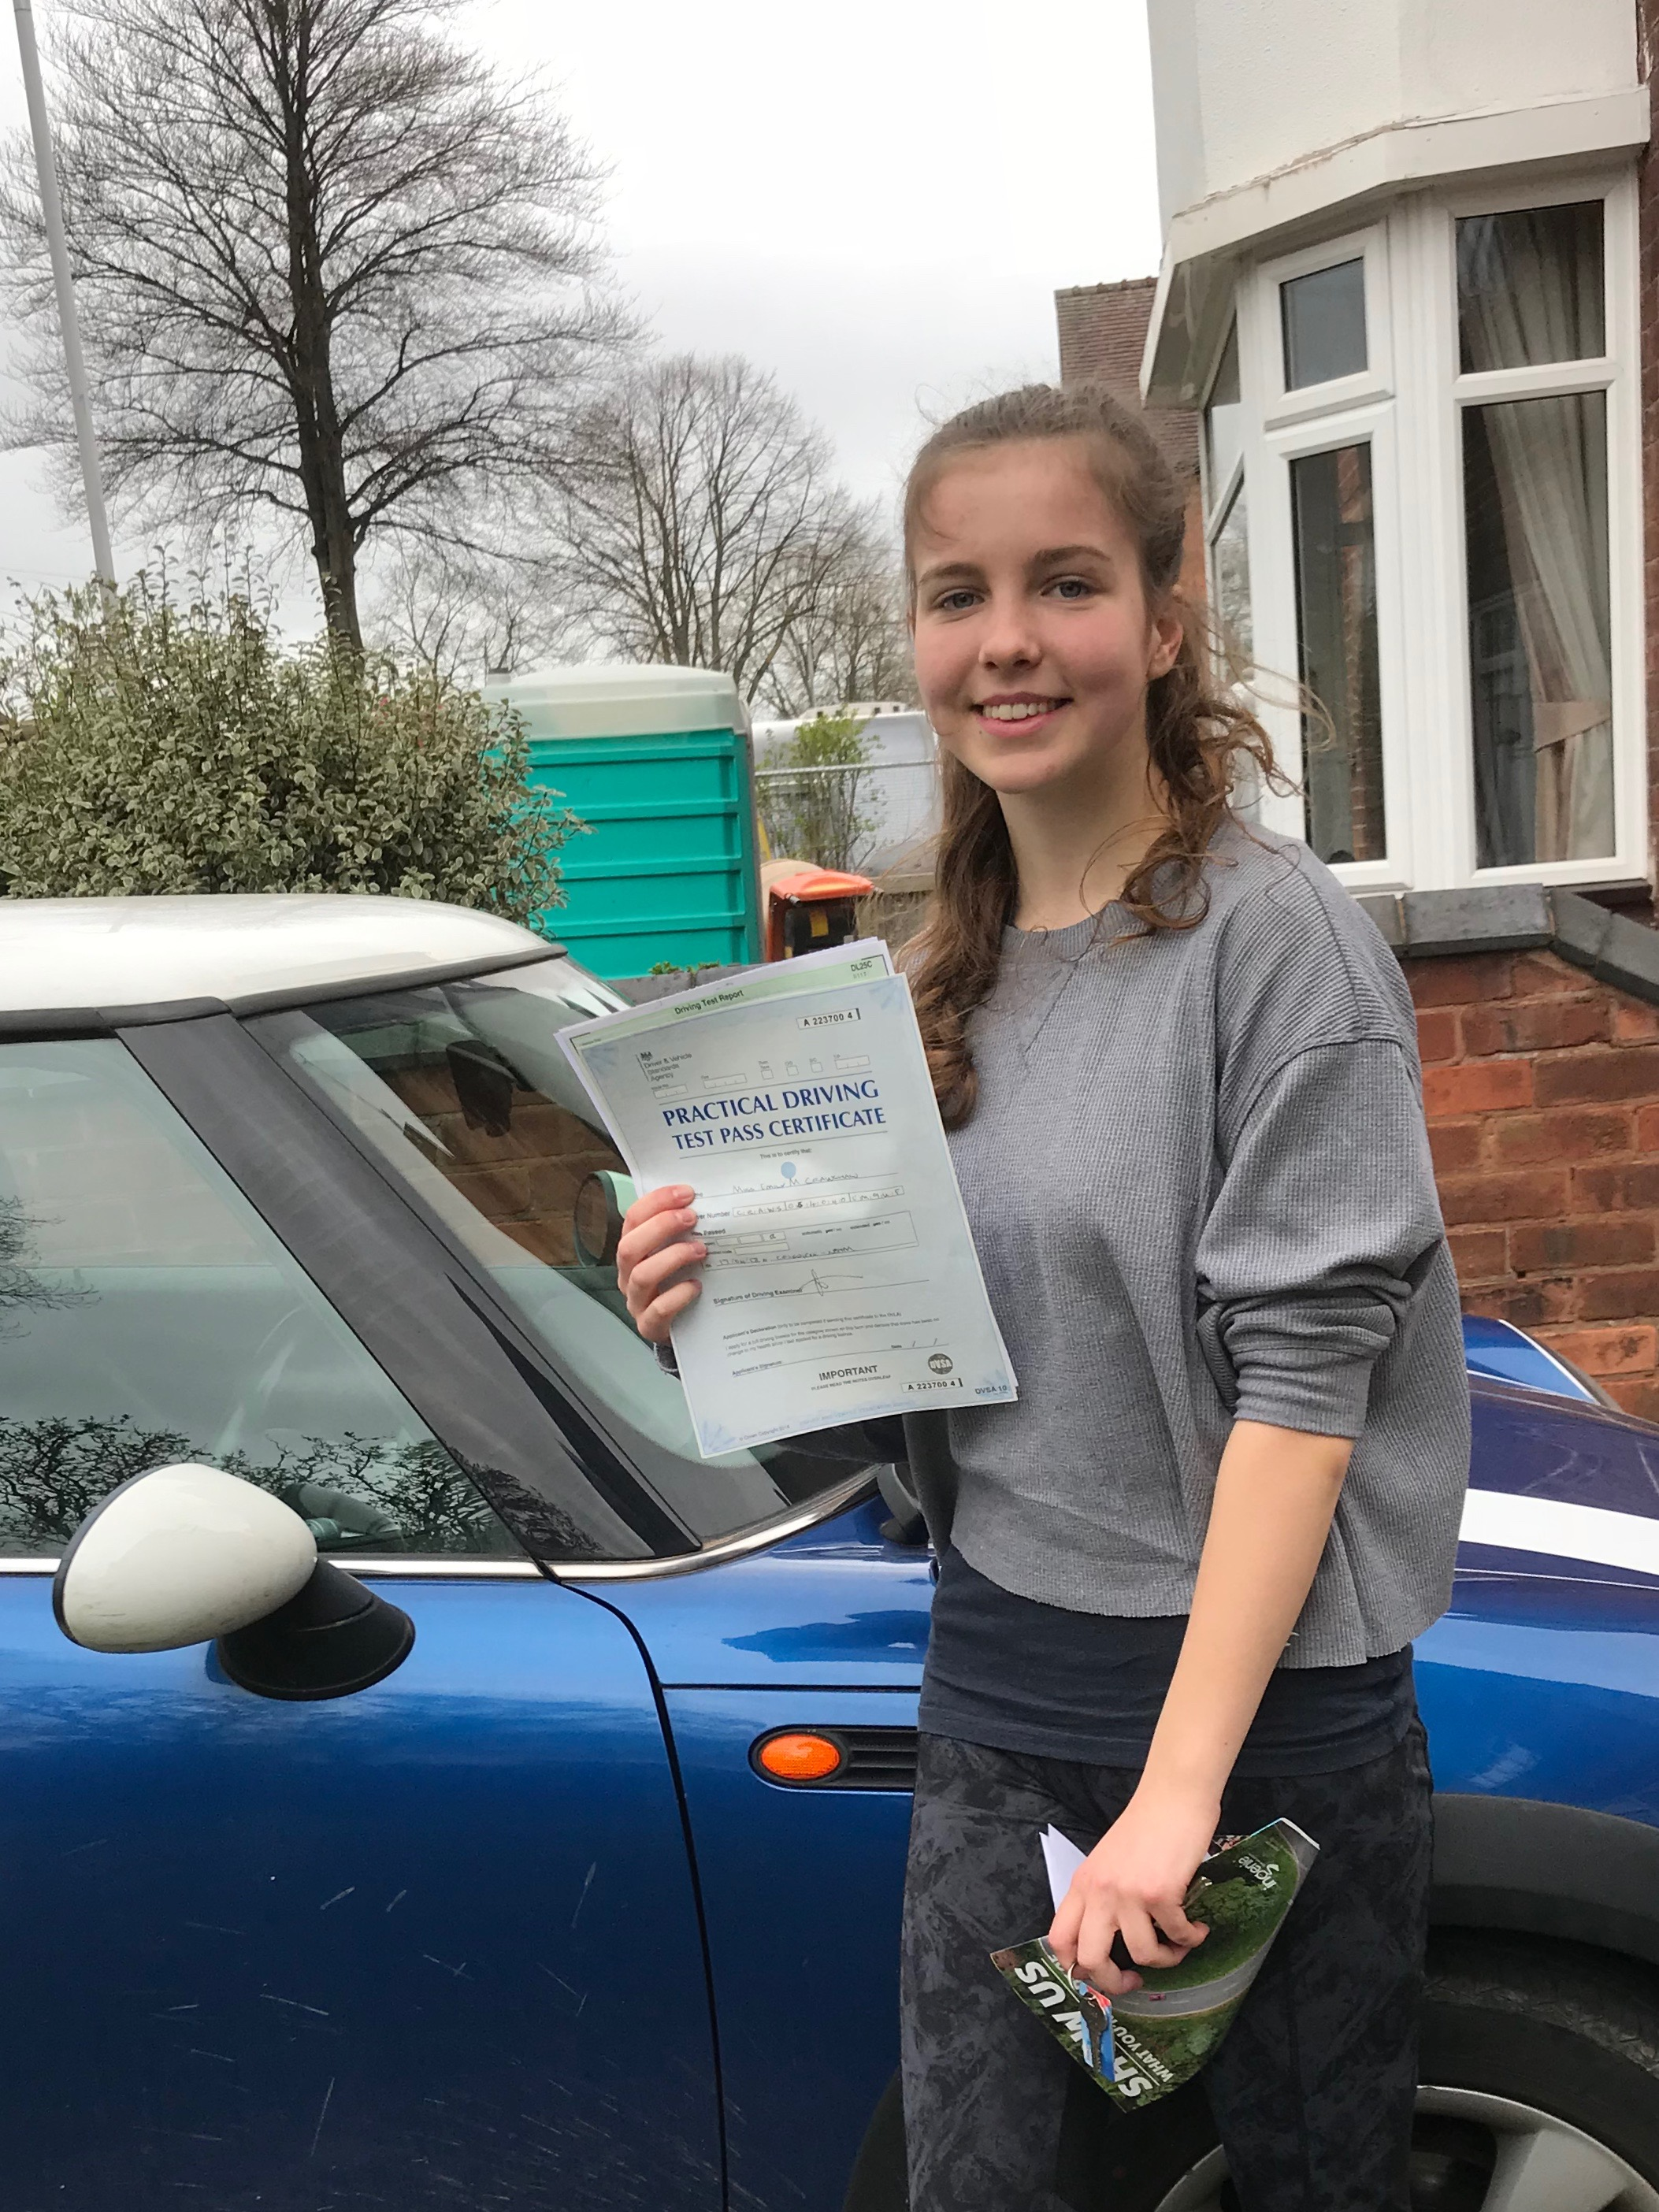 Congratulations to Emily for passing her test!